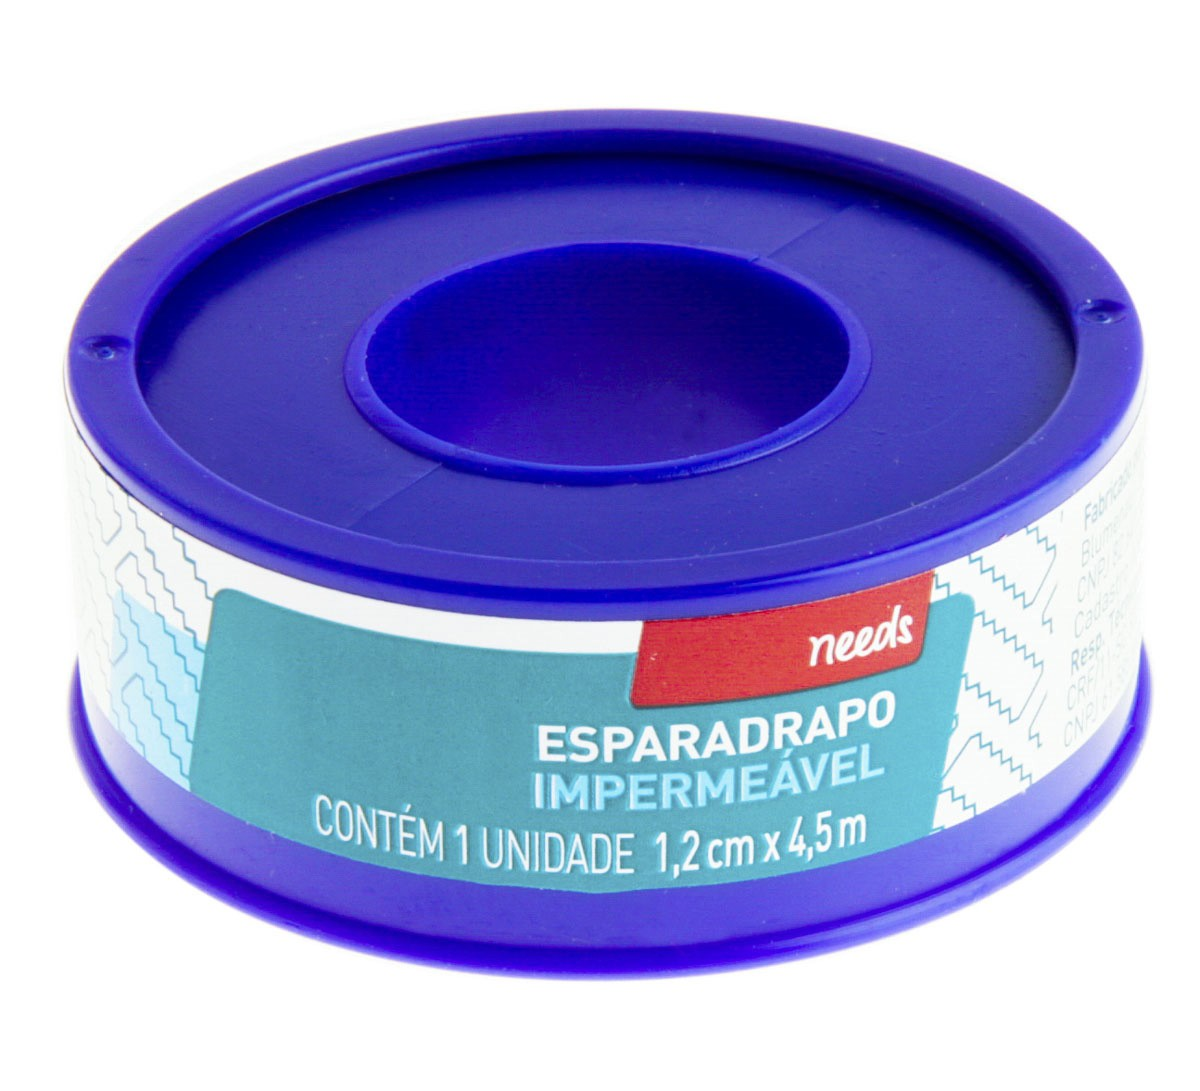 Needs Esparadrapo 1,2 X 4,5